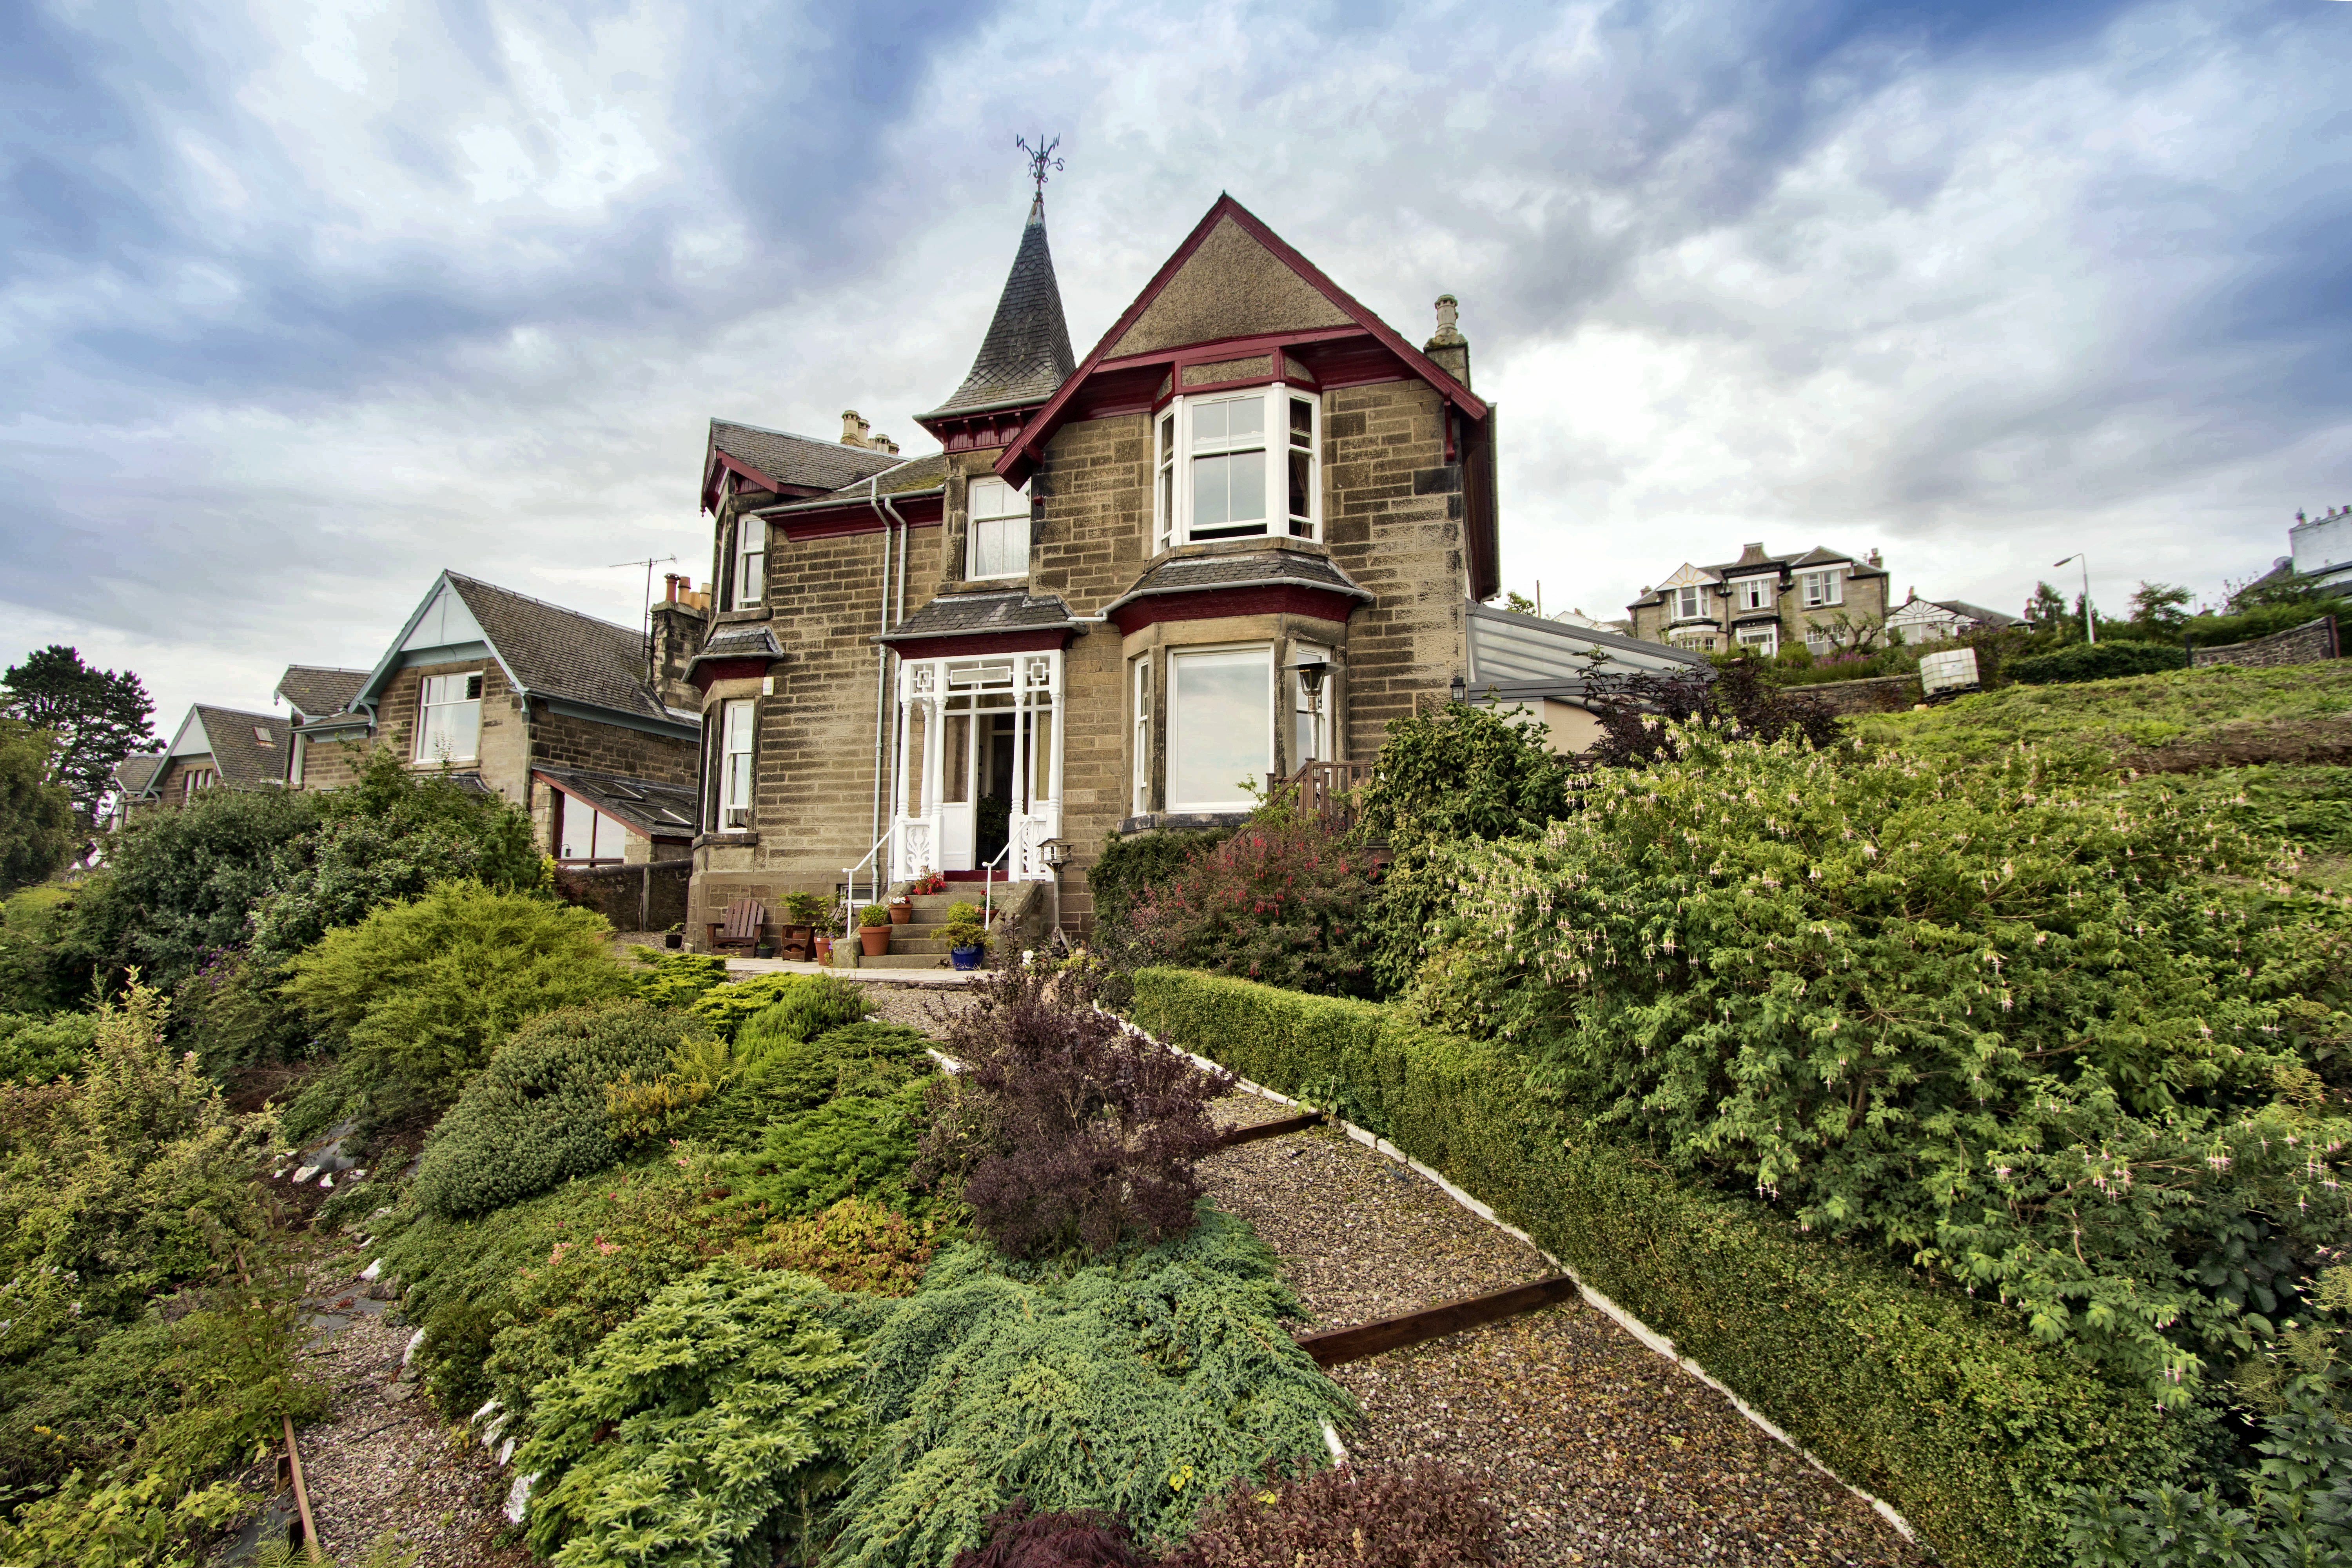 Alpine Villa, 21 Naughton Road, Wormit, Newport on Tay, Fife, DD6 8NG